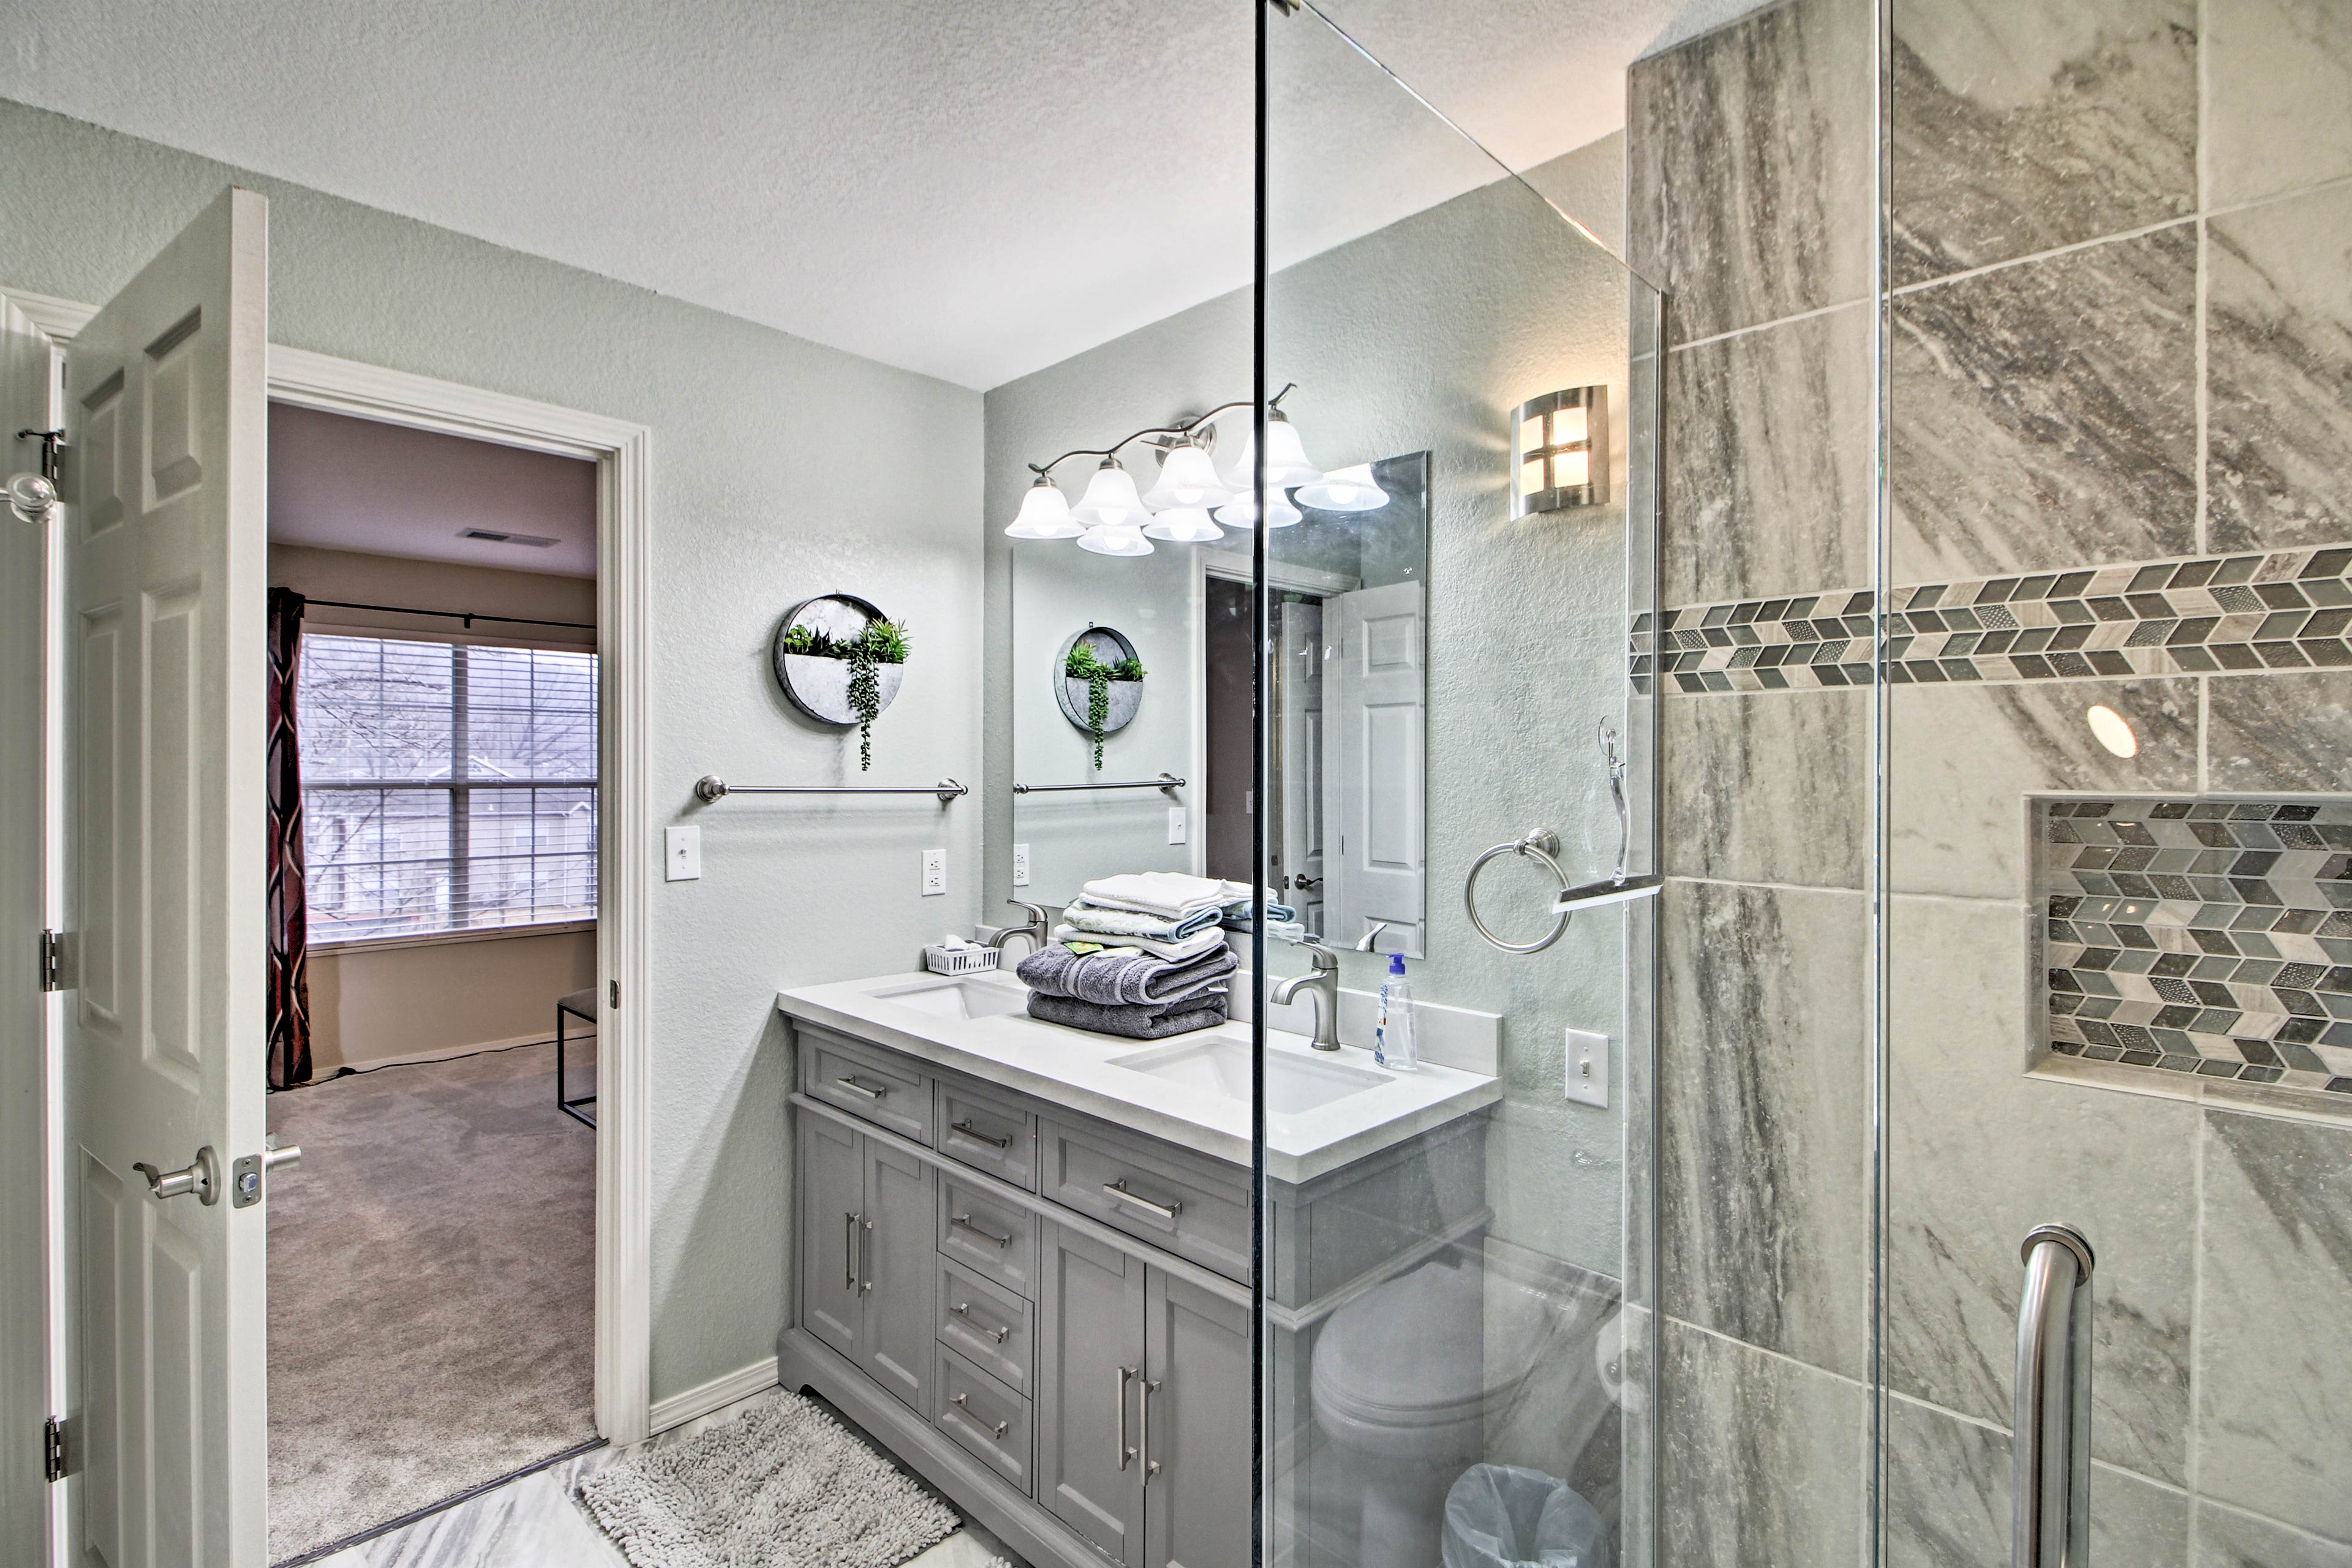 The master bathroom includes a walk-in shower & double vanity.